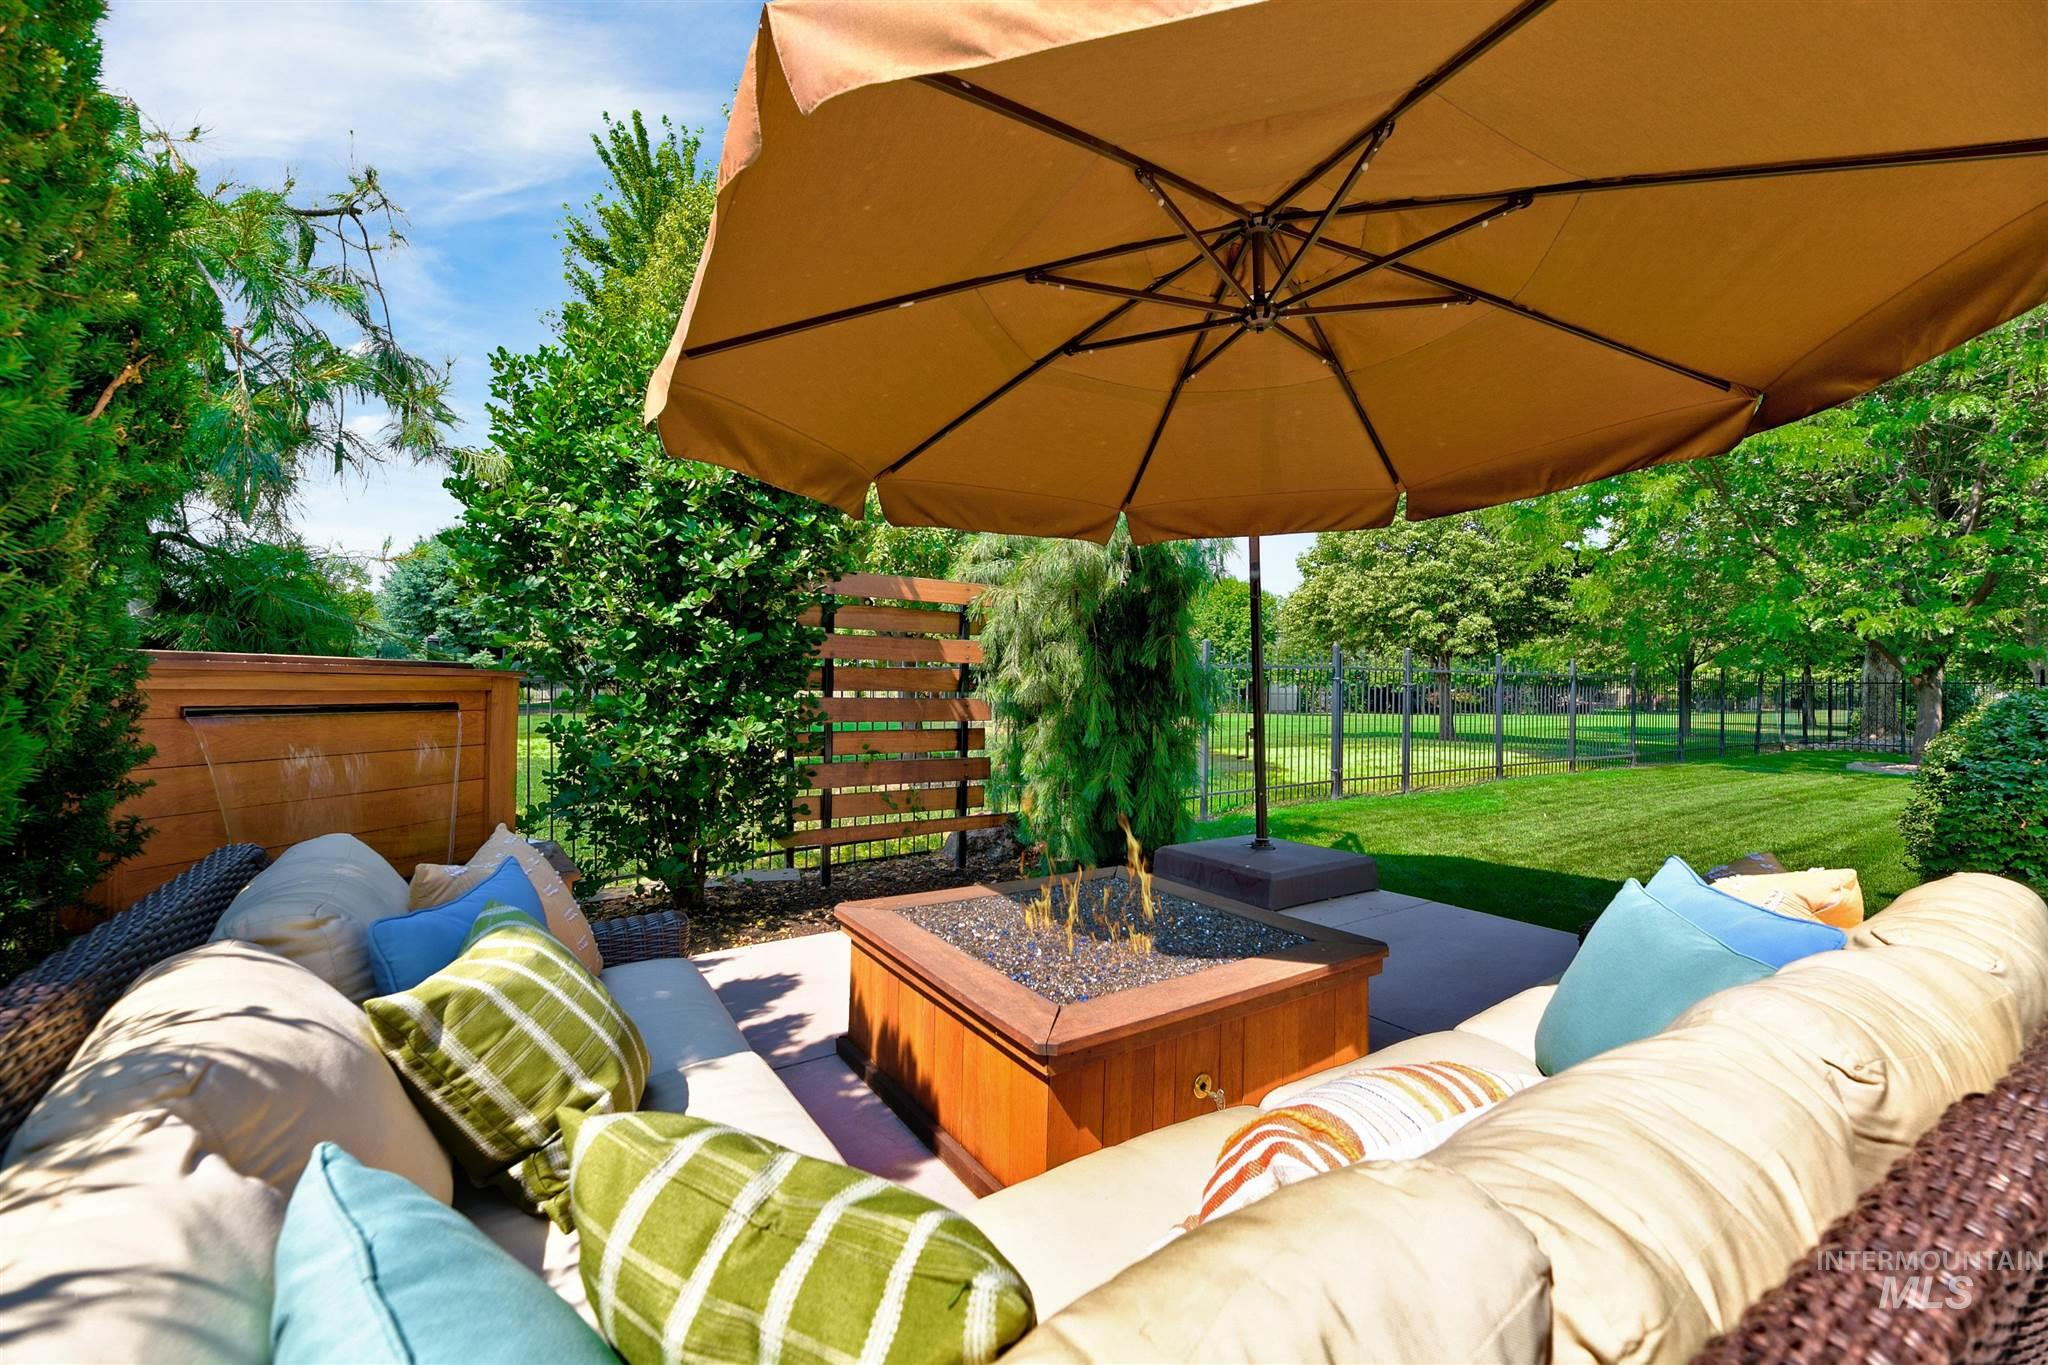 Nestled in the desirable Paramount Community, this stunning home sits on a prime,corner lot & backs to a park-like common area,creating a strong sense of privacy.The fabulous backyard is made for entertaining,complete with a waterfall feature,built-in gas fire-pit,covered patio & custom landscaping.Massive Master Suite feels like a retreat with it's own sitting area, patio access & huge walk-in closet.Open kitchen concept allows for easy congregation while the Bonus Room is the perfect hideout for some fun!